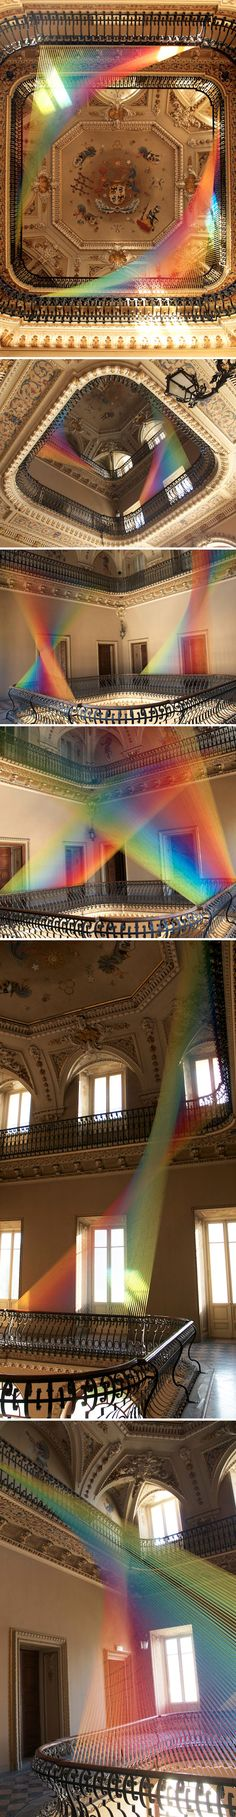 Thread installation by Mexican artist Gabriel Dawe in Como, Italy for Miniartextil.